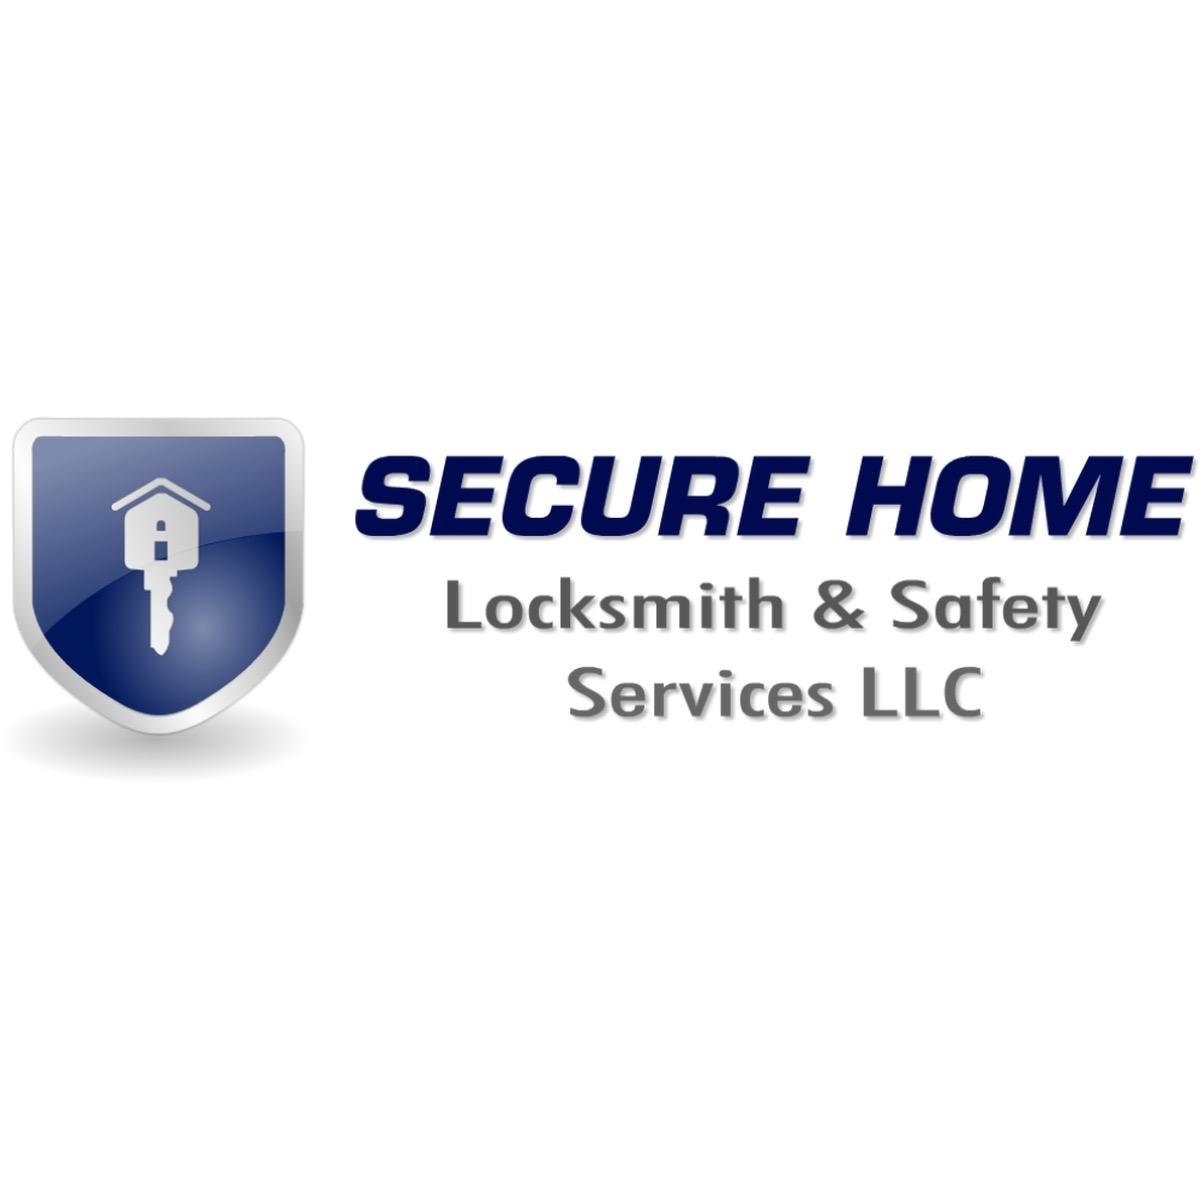 Secure Home Locksmith & Safety Services, LLC